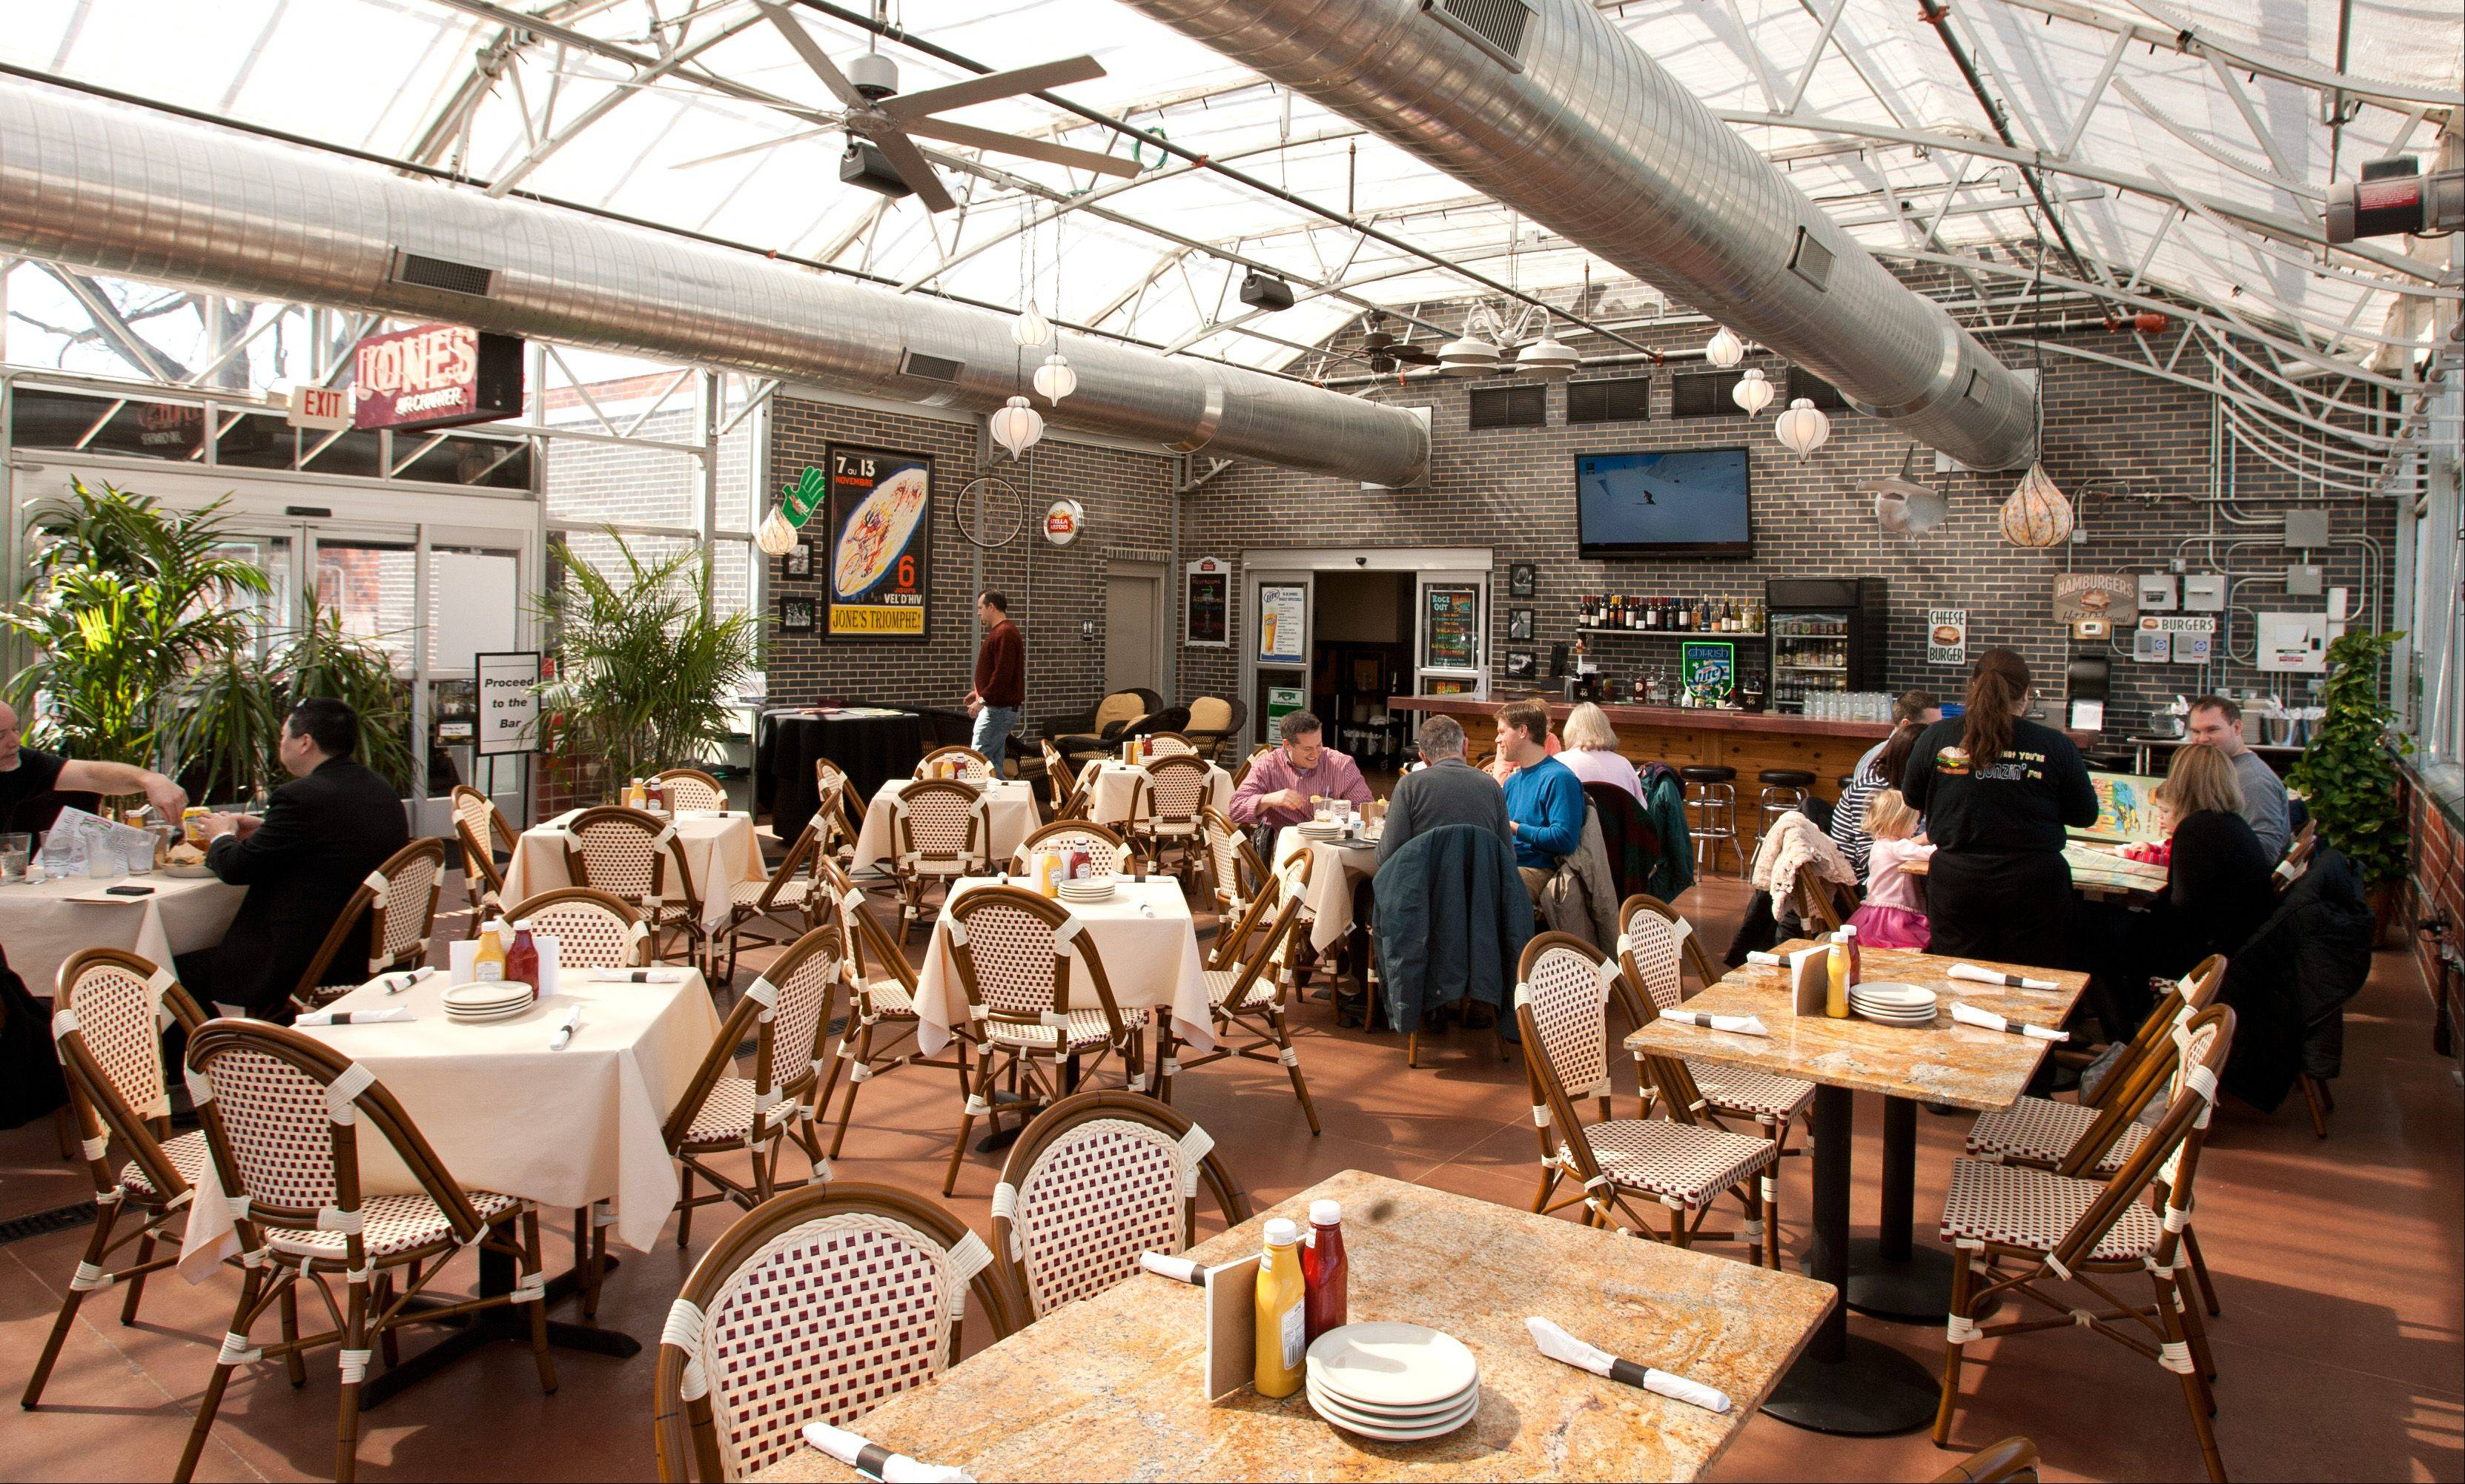 A past life as a greenhouse makes the dining area at HB Jones sunny and bright.